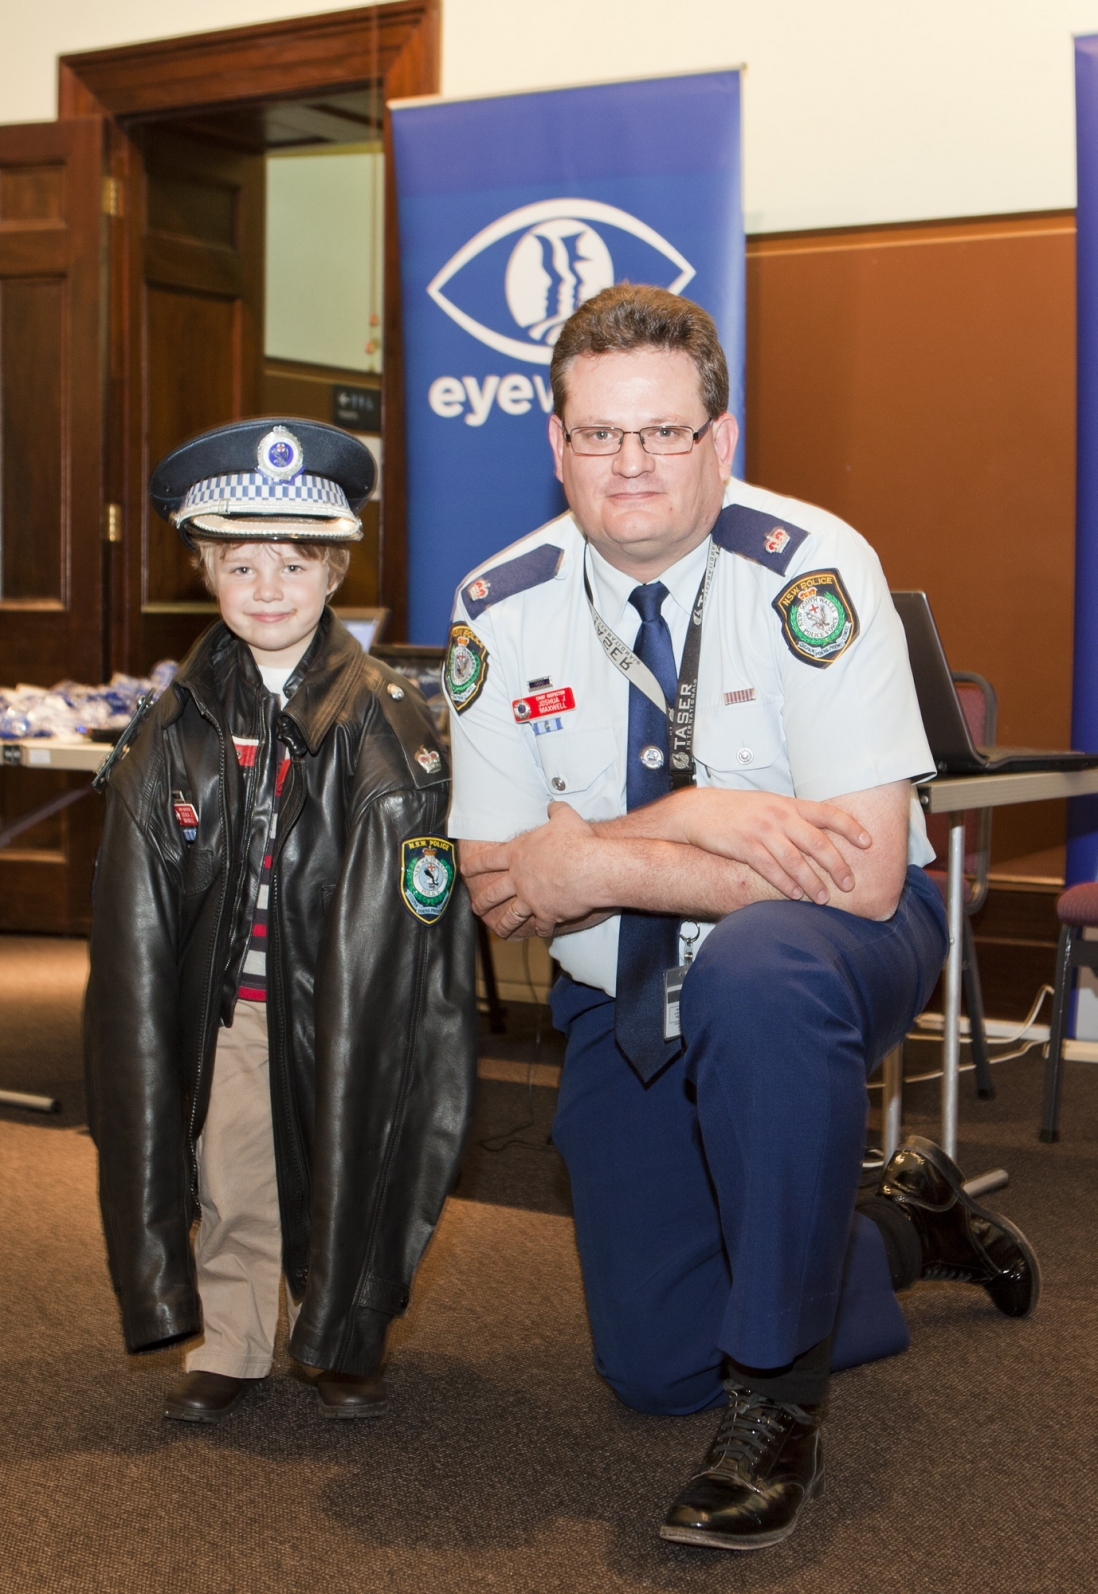 Josh Maxwell, from NSW Police Eyewatch, lends his uniform coat and hat to Stephen for a photograph in the Water Police Court at the Justice and Police Museum